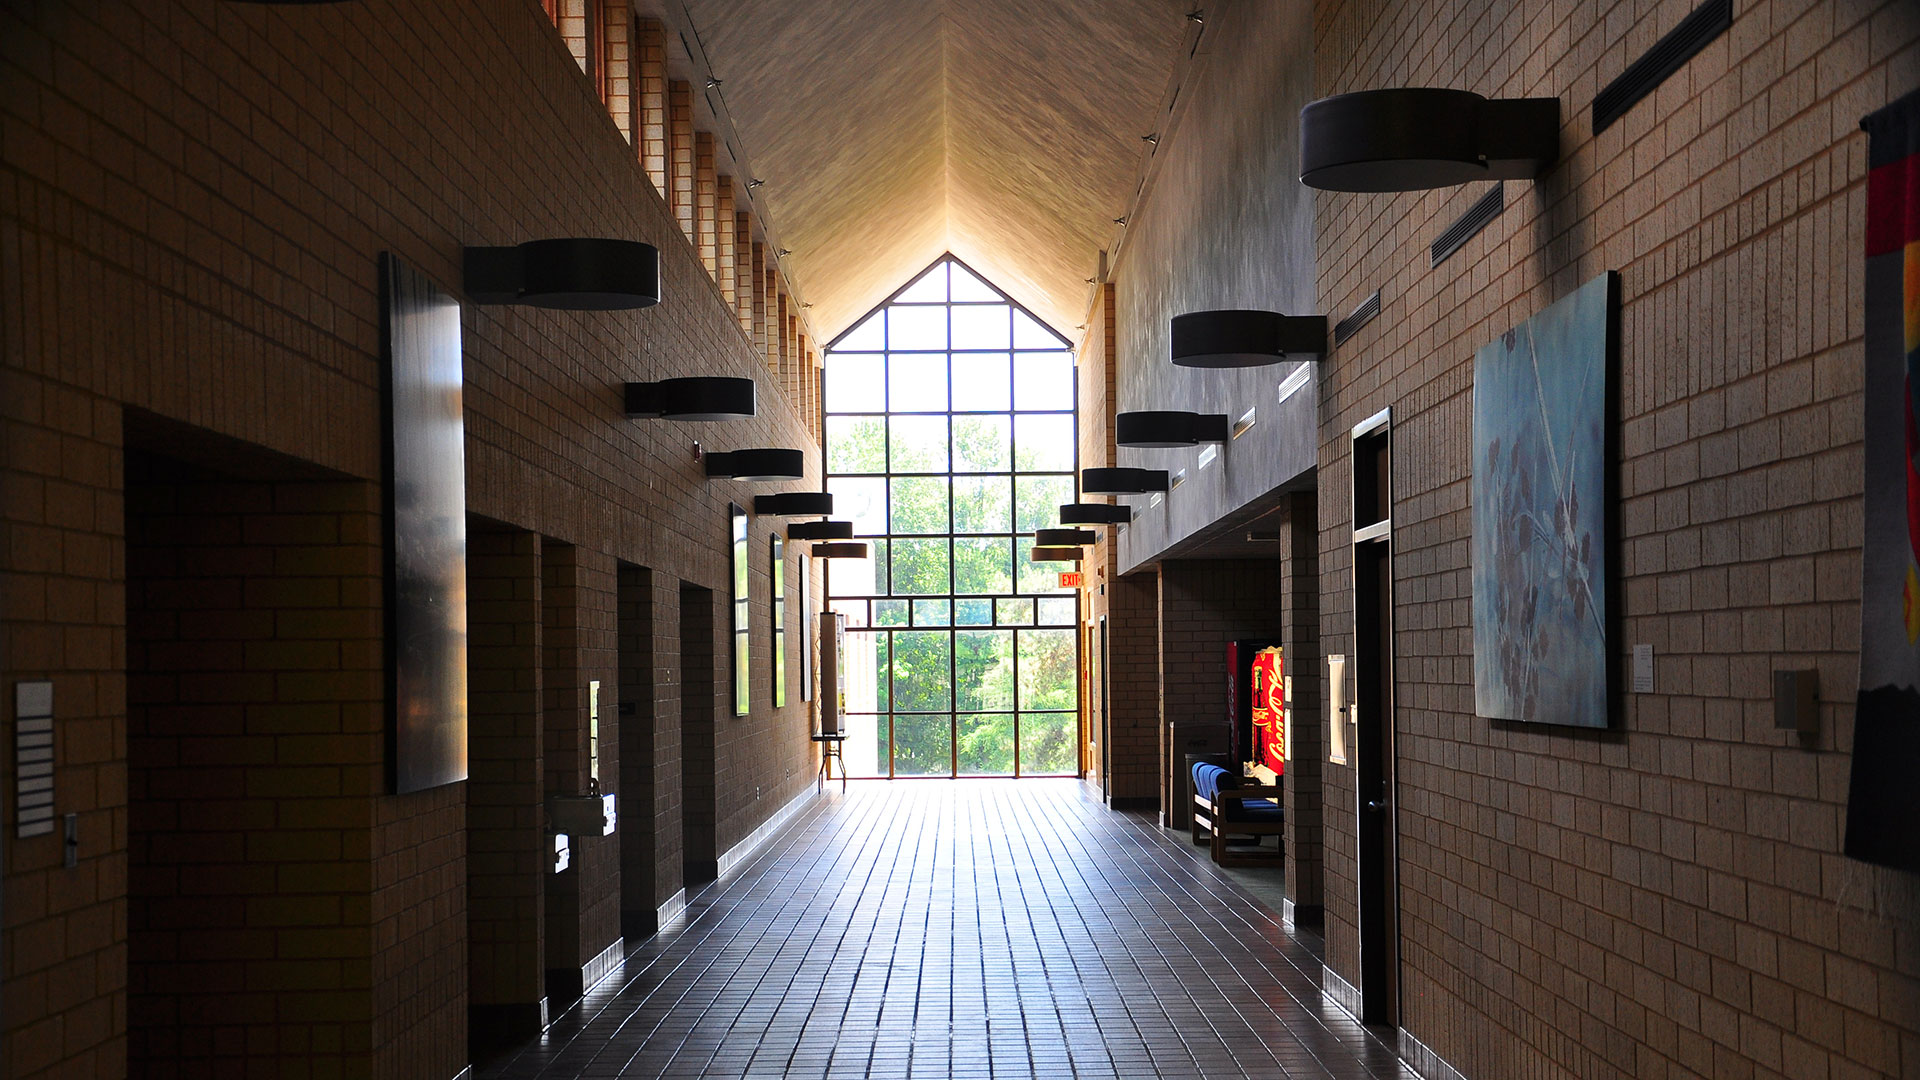 Backlit photo of the main hallway in the KBS Academic Building.